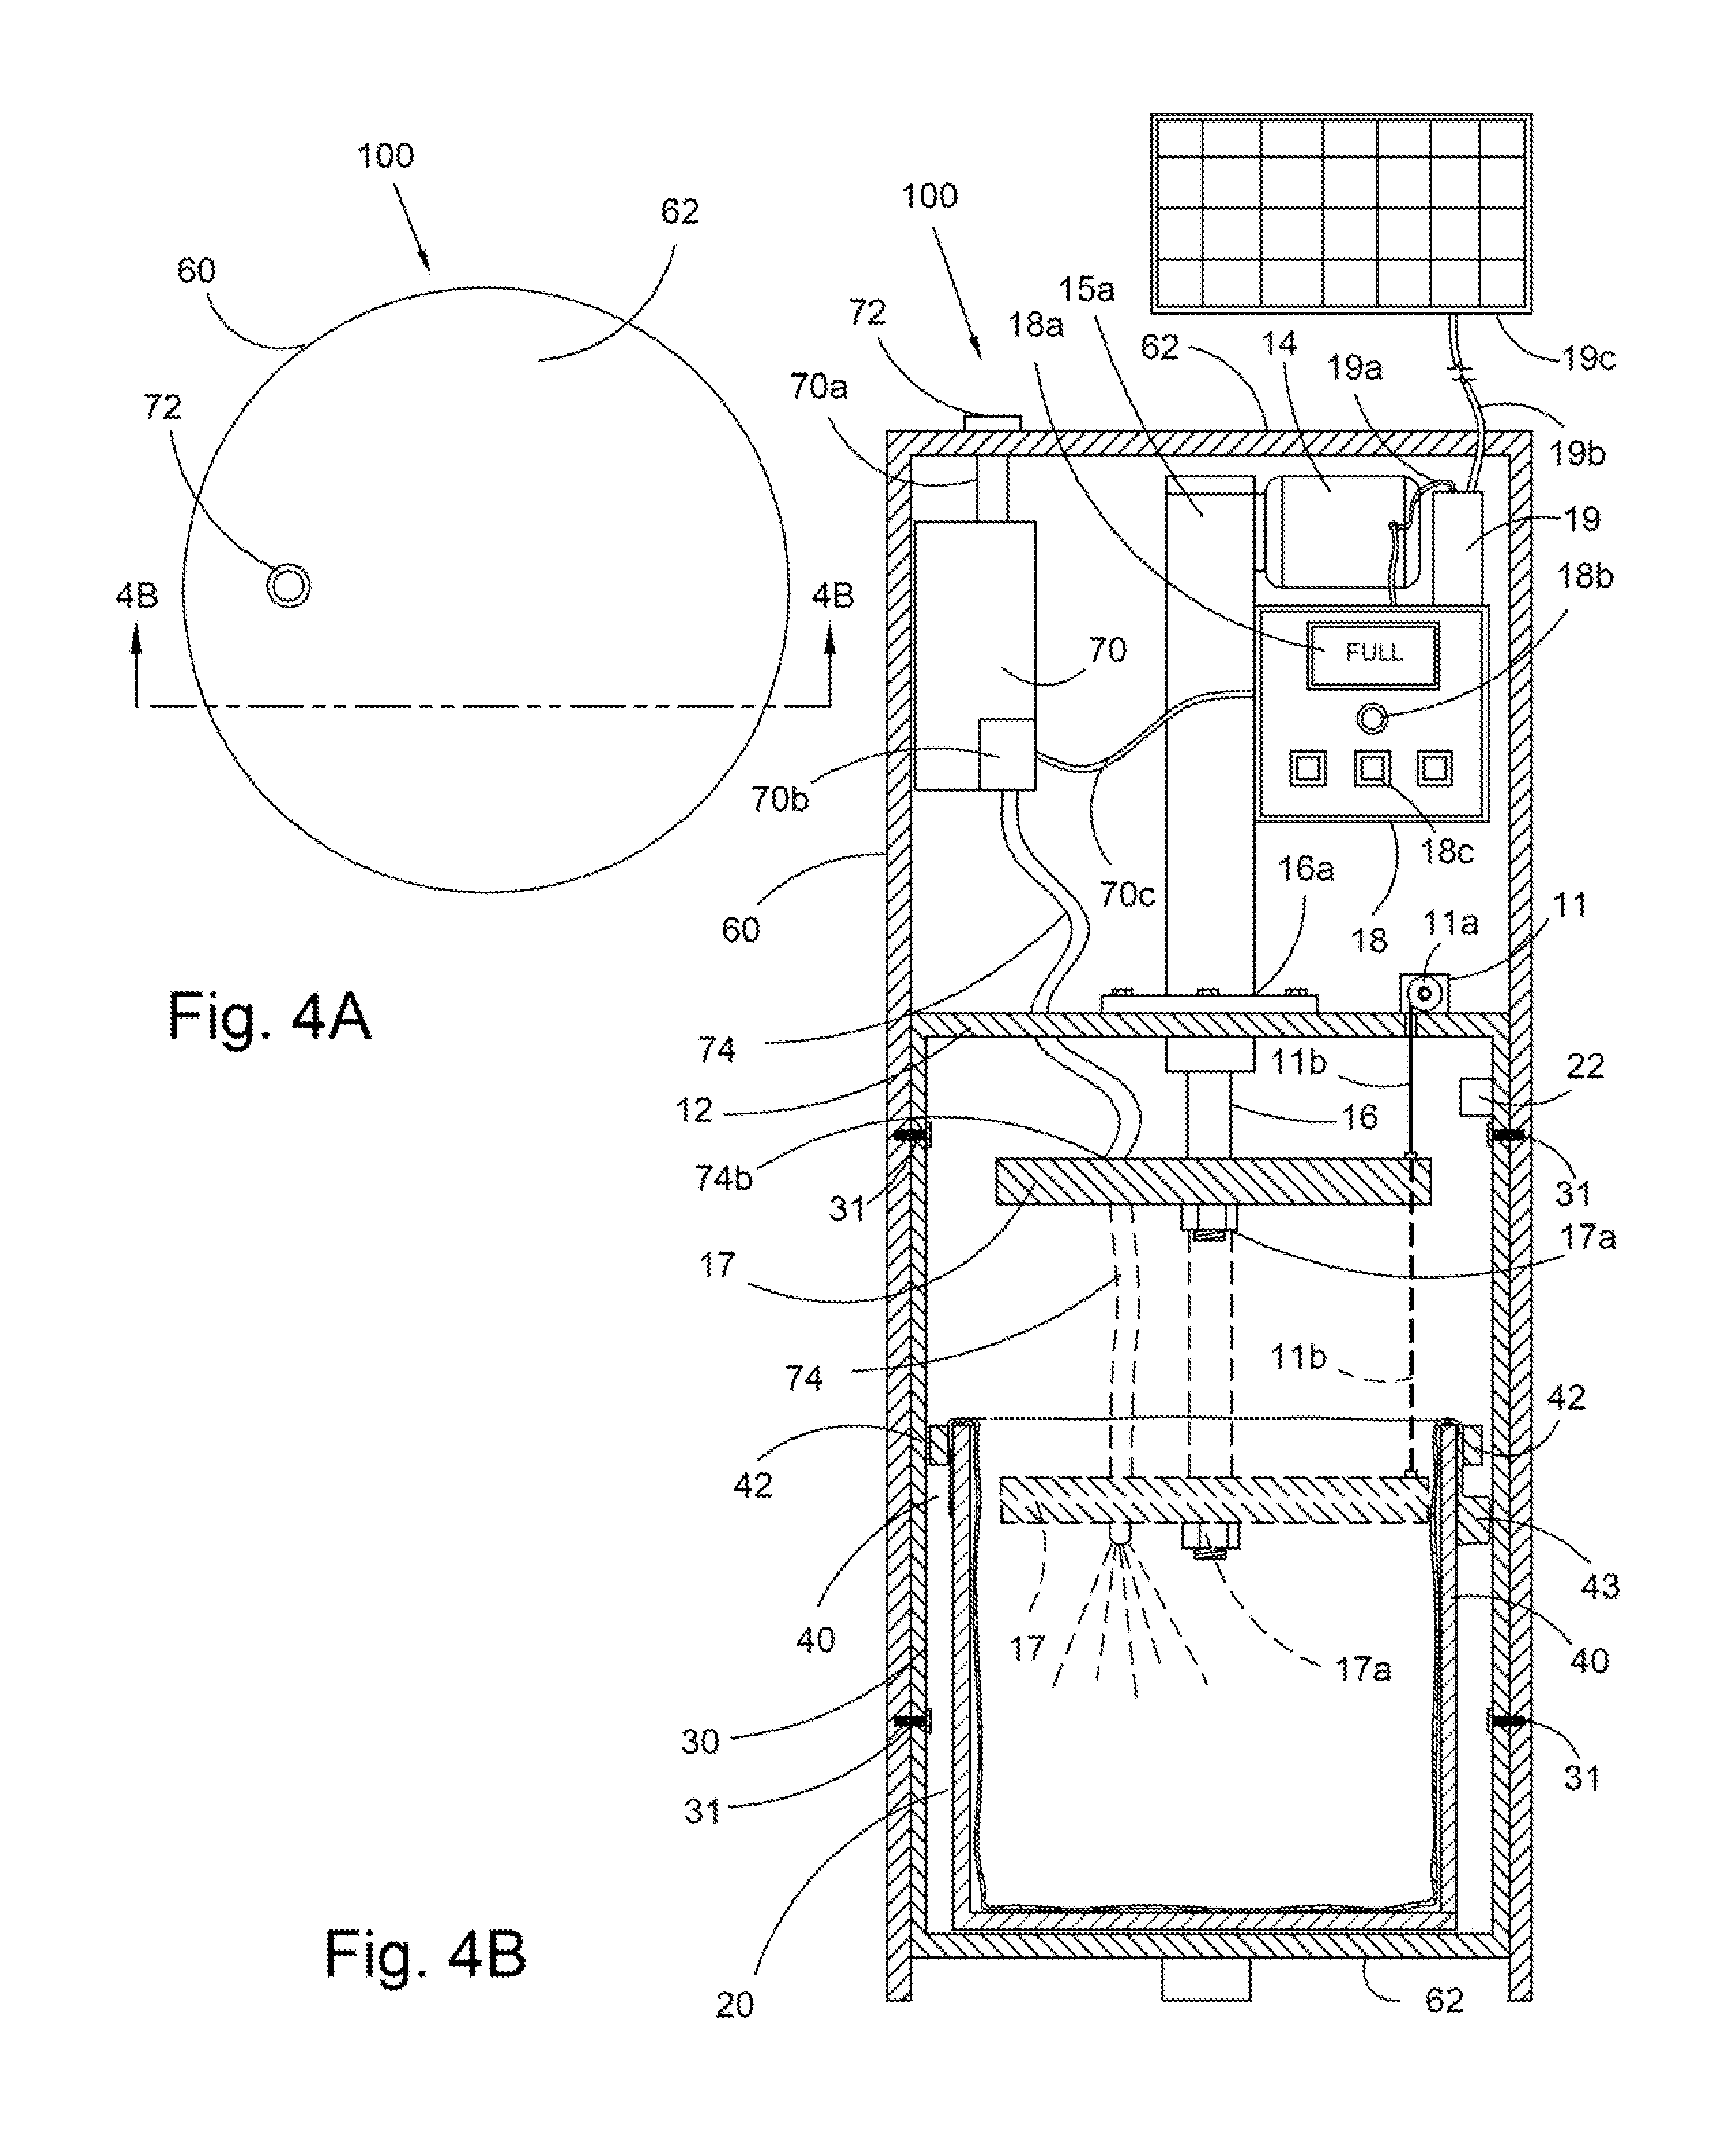 How Does A Trash Compactor Work Patent Us20140041535 Trash Compactor Having A Linear Actuator